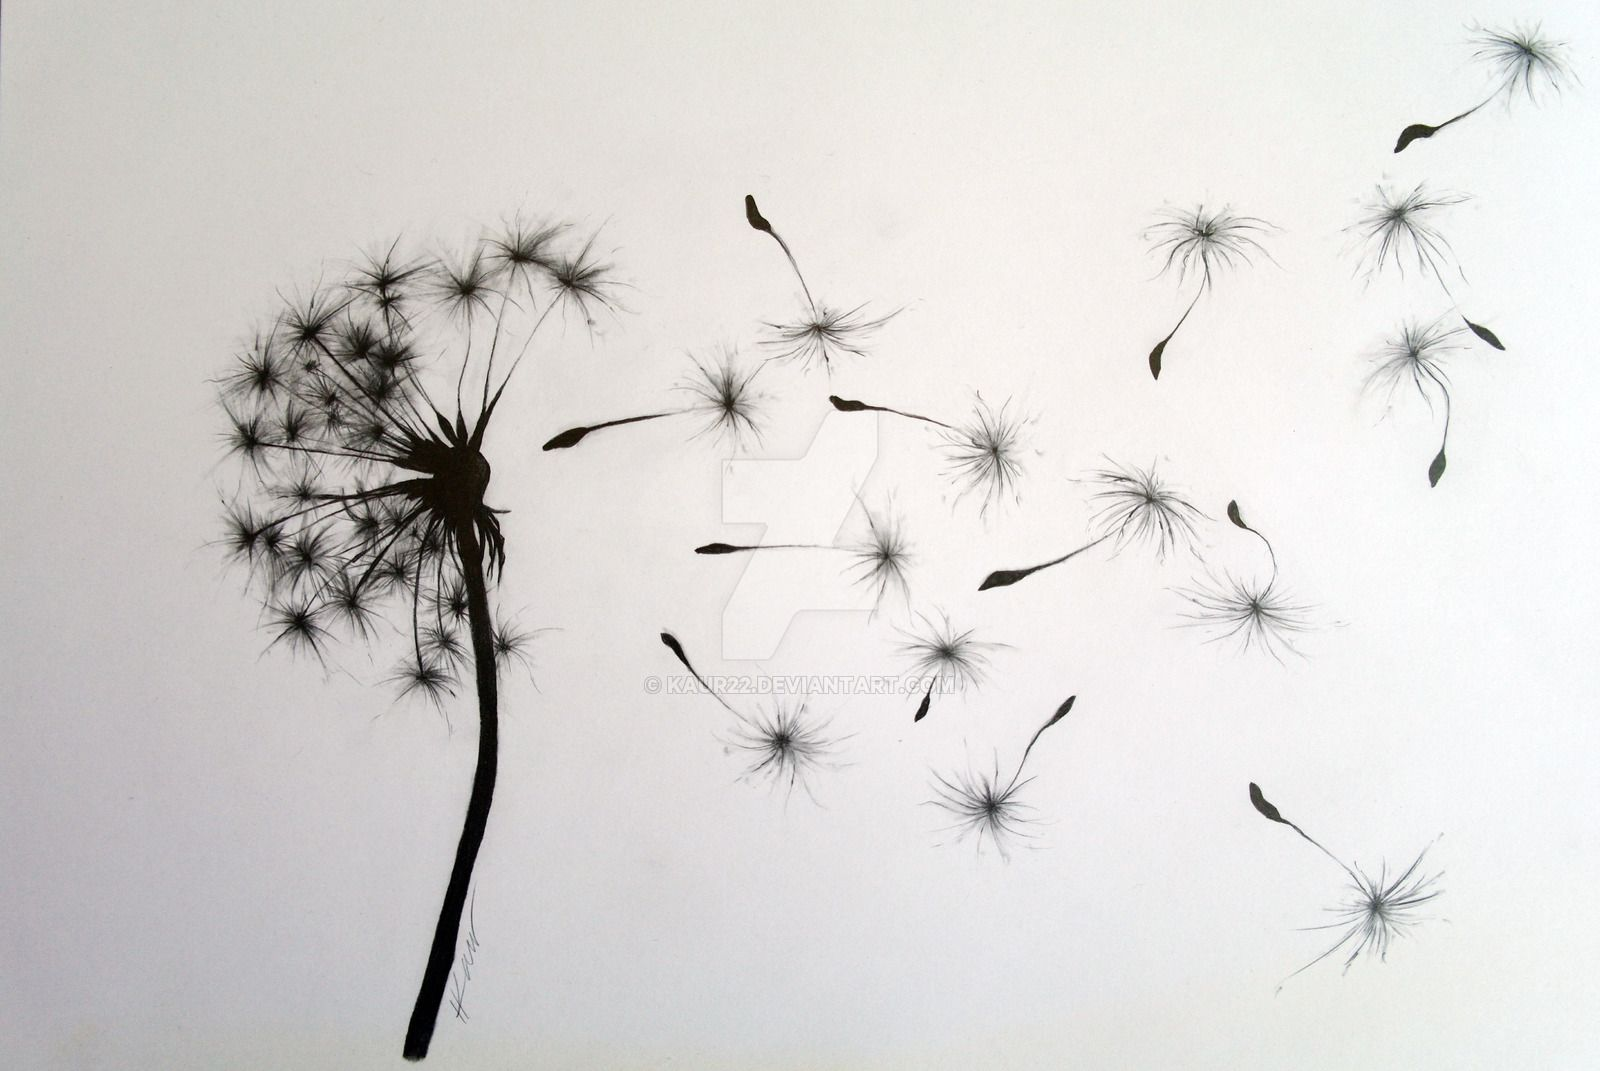 Dandelion Drawing Google Search Dandelion Tattoo Dandelion Tattoo Design Dandelion Tattoo Small